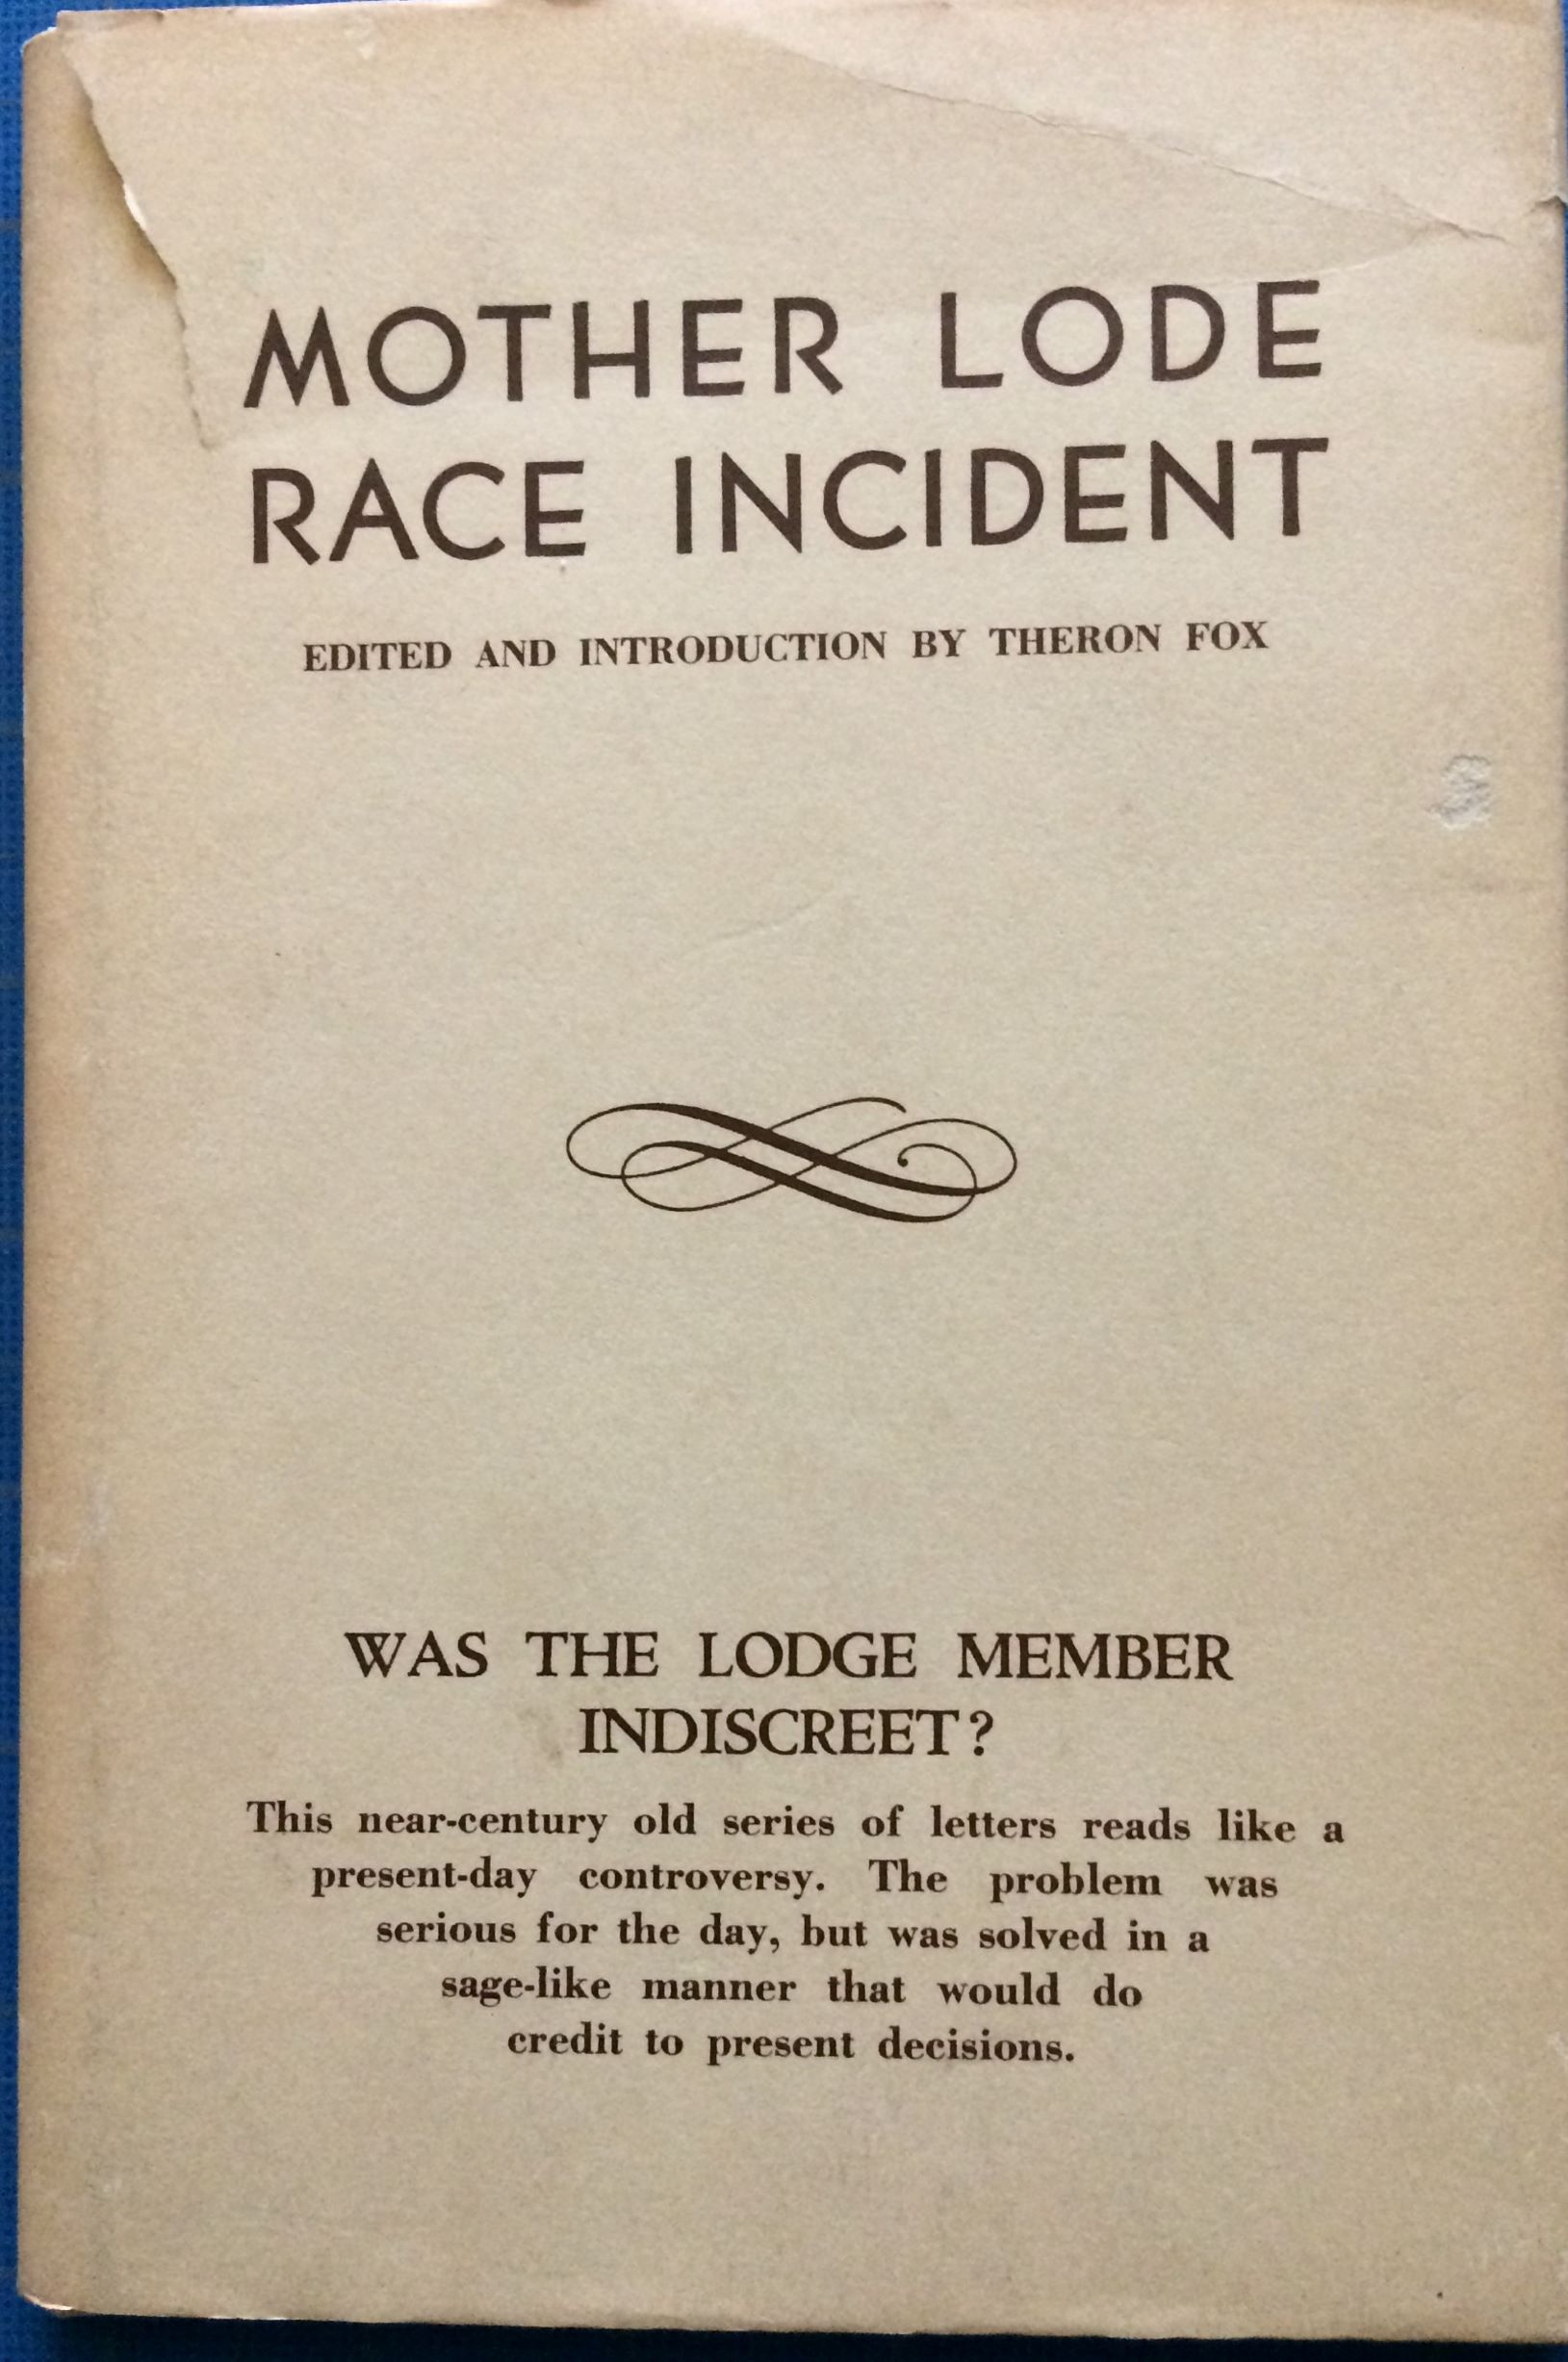 Image for Mother Lode Race Incident. Letters between two lodges of the I.O.O.F. regarding alleged misconduct on the part of a member.